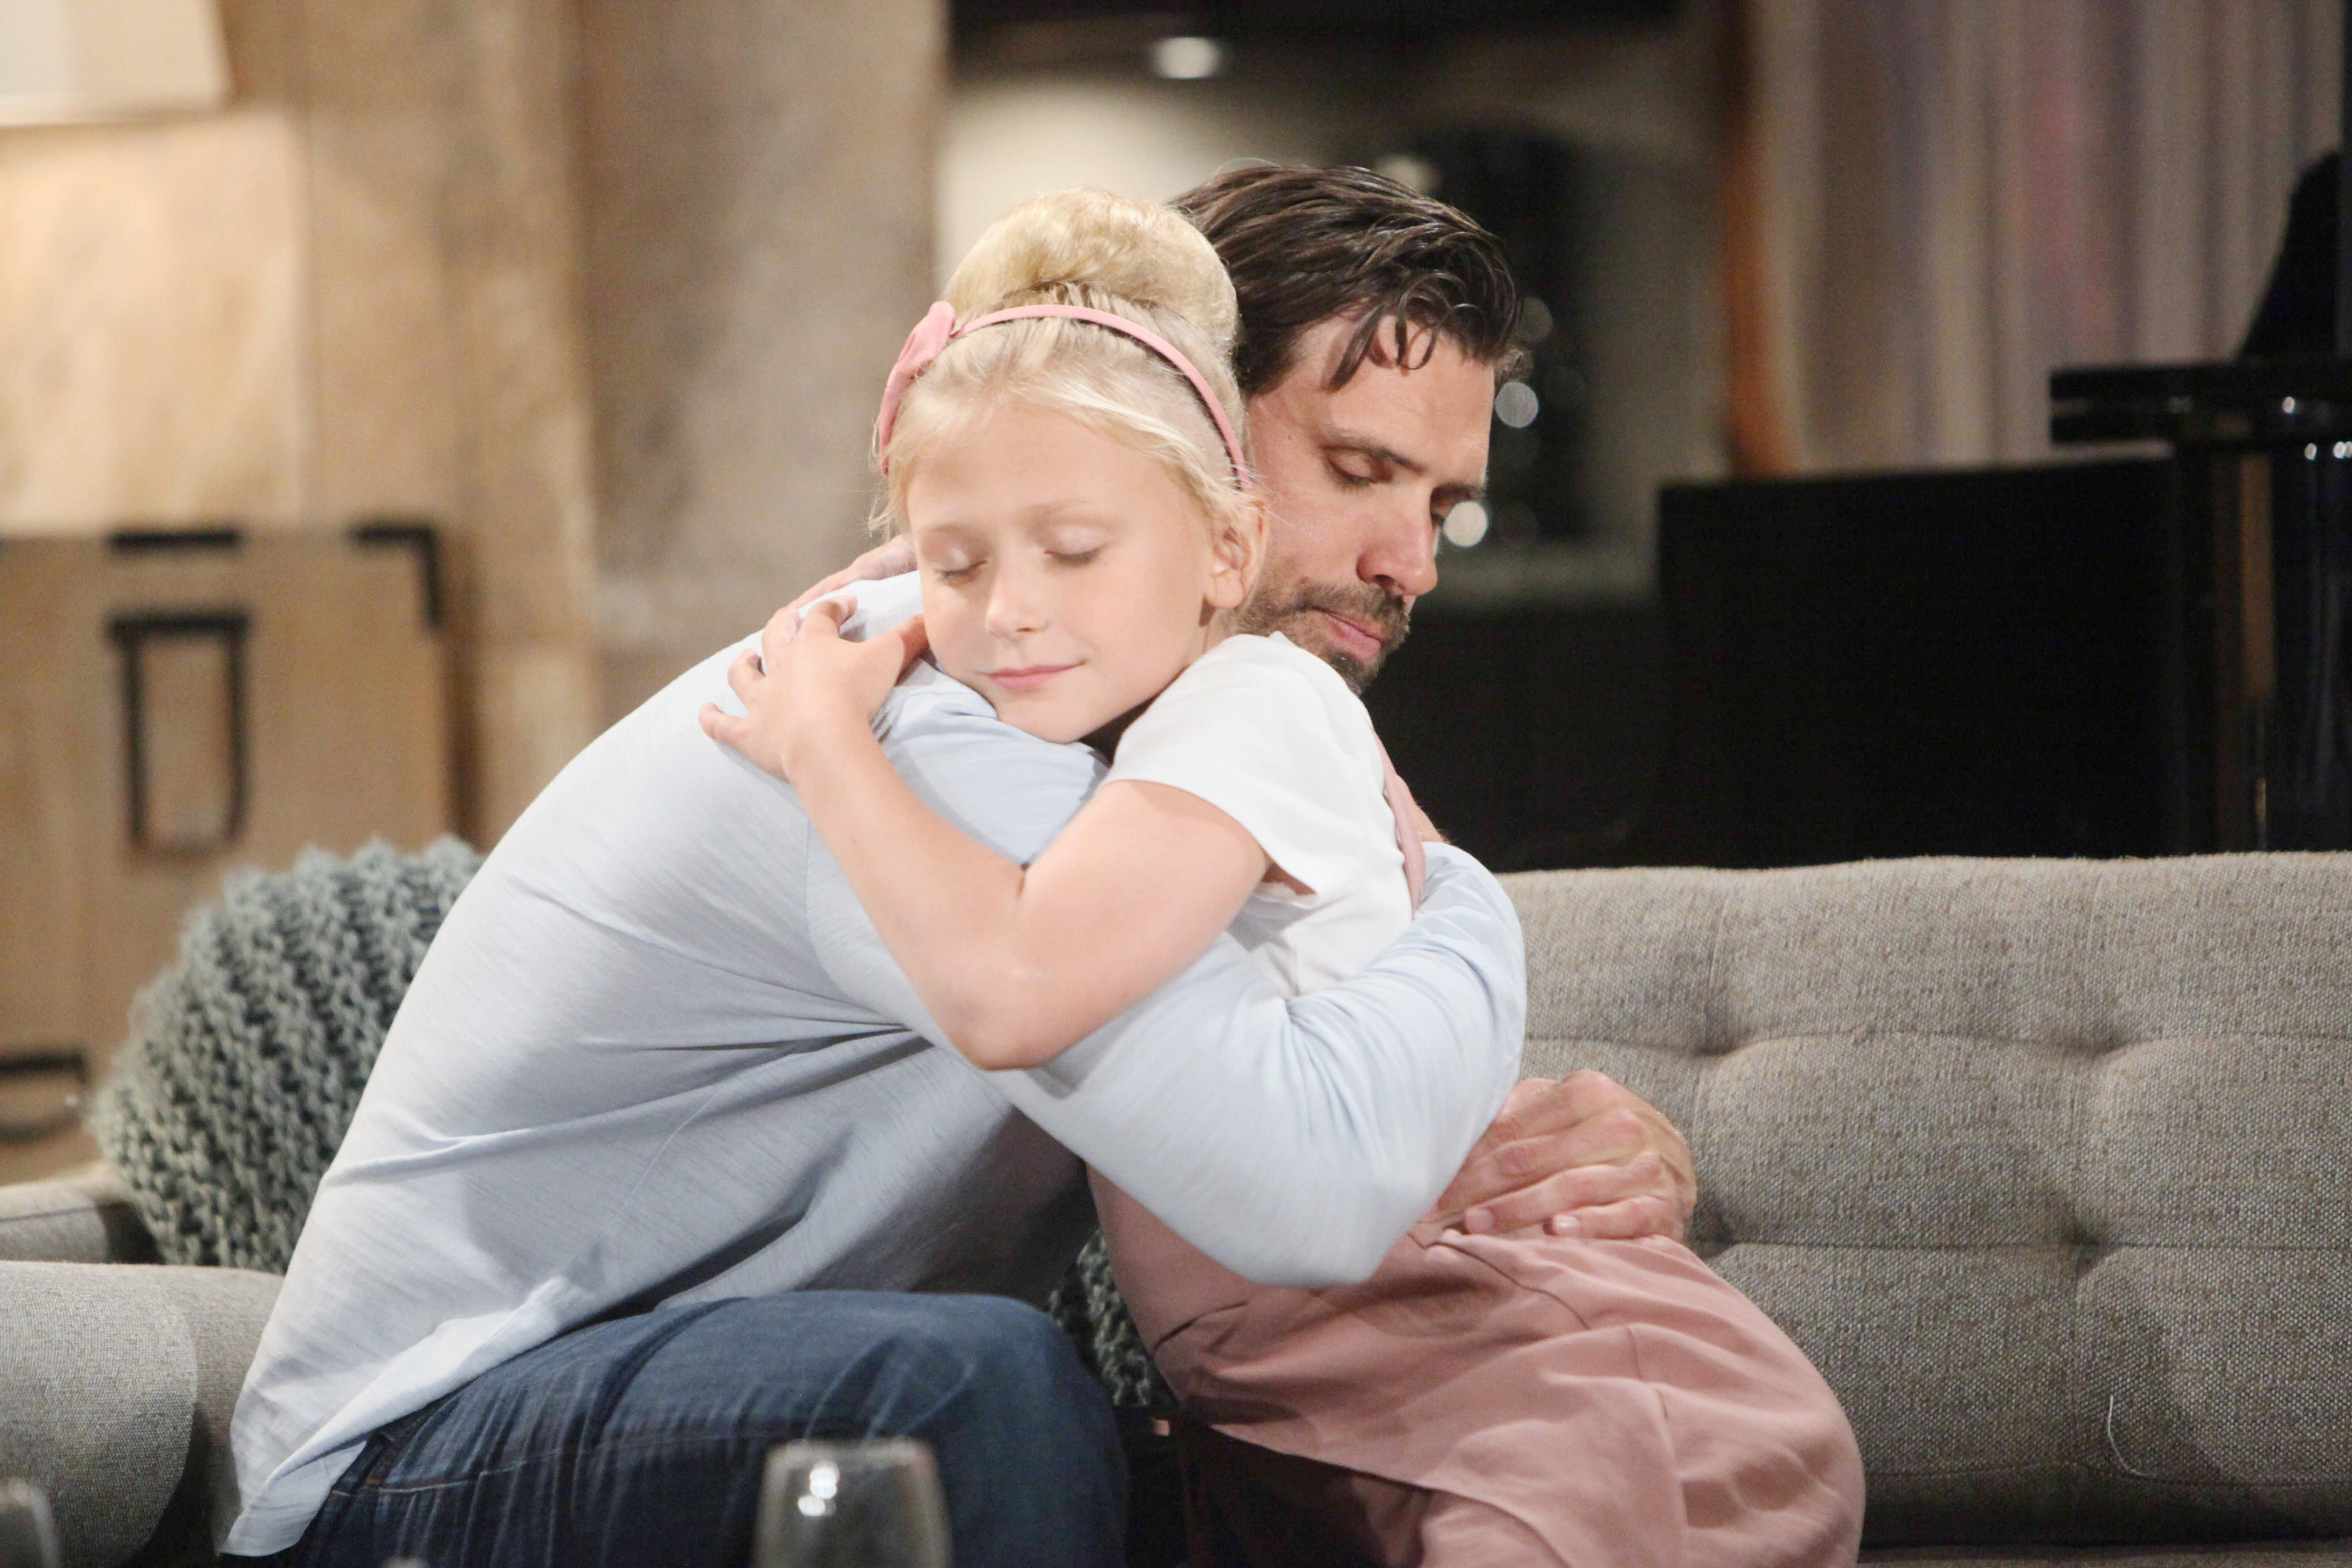 The Young and the Restless Spoilers: Coming Up December 1st – December 7th